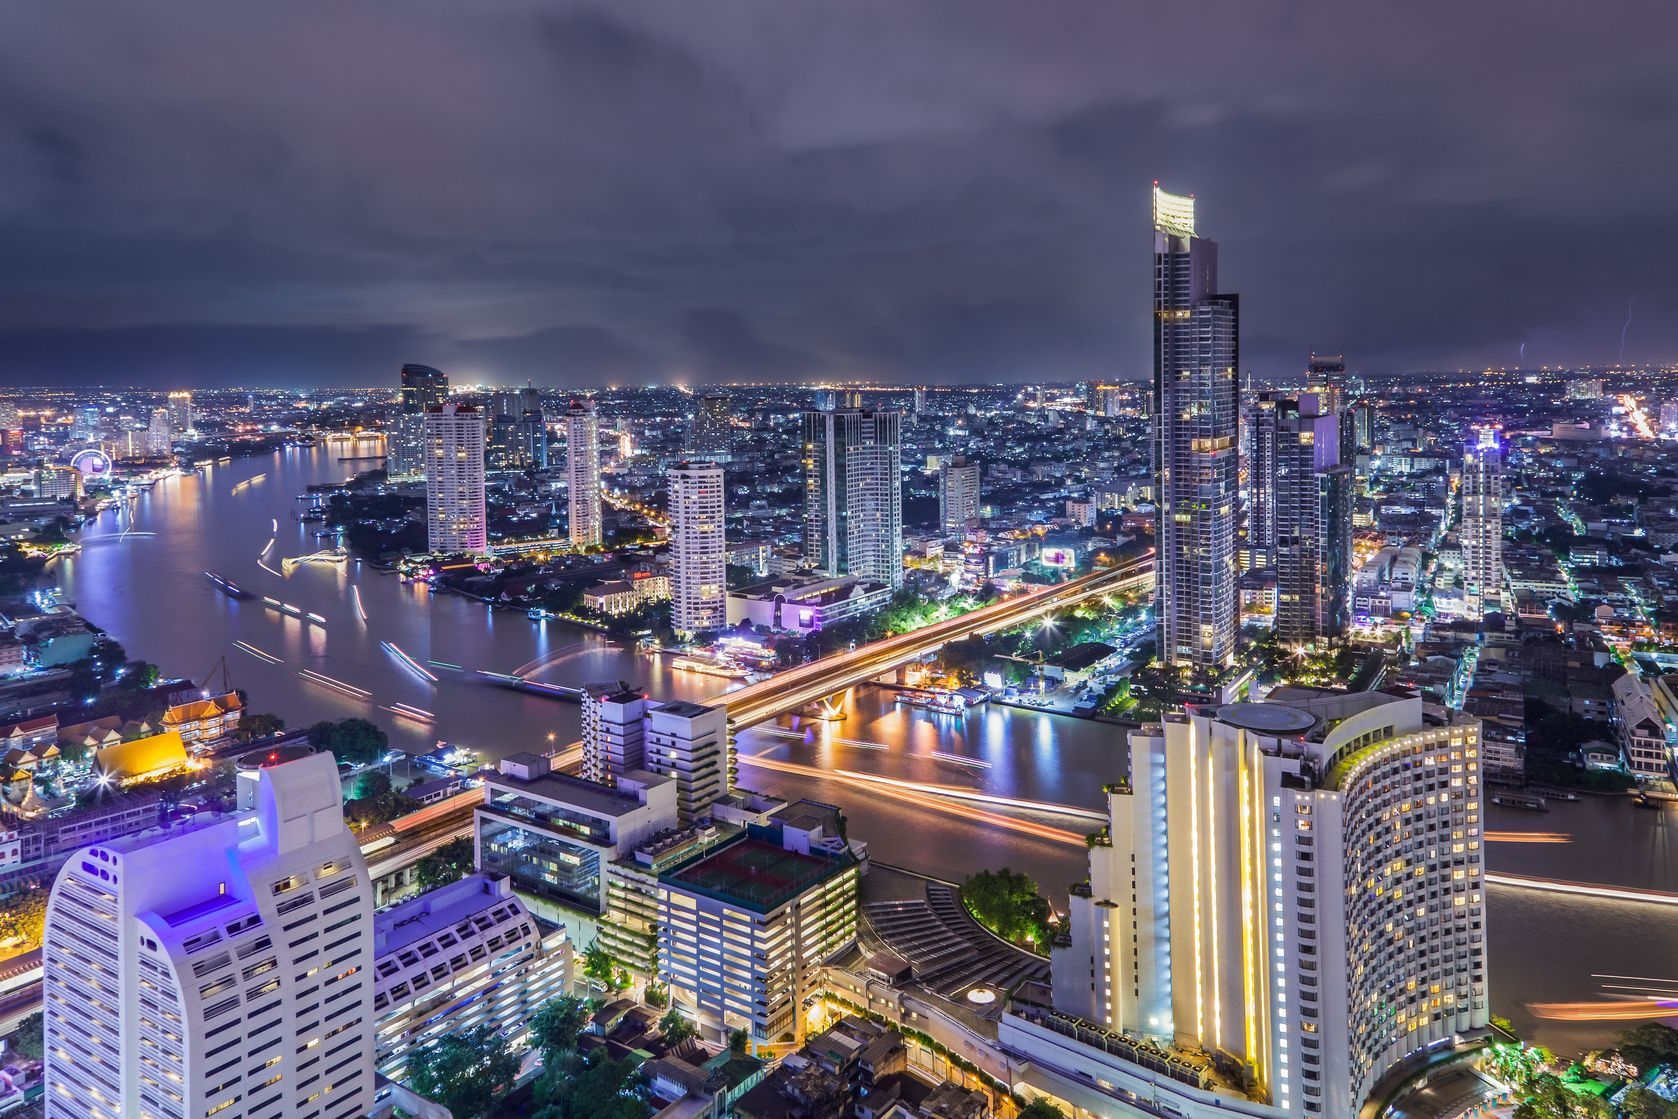 bangkok at dusk with main river